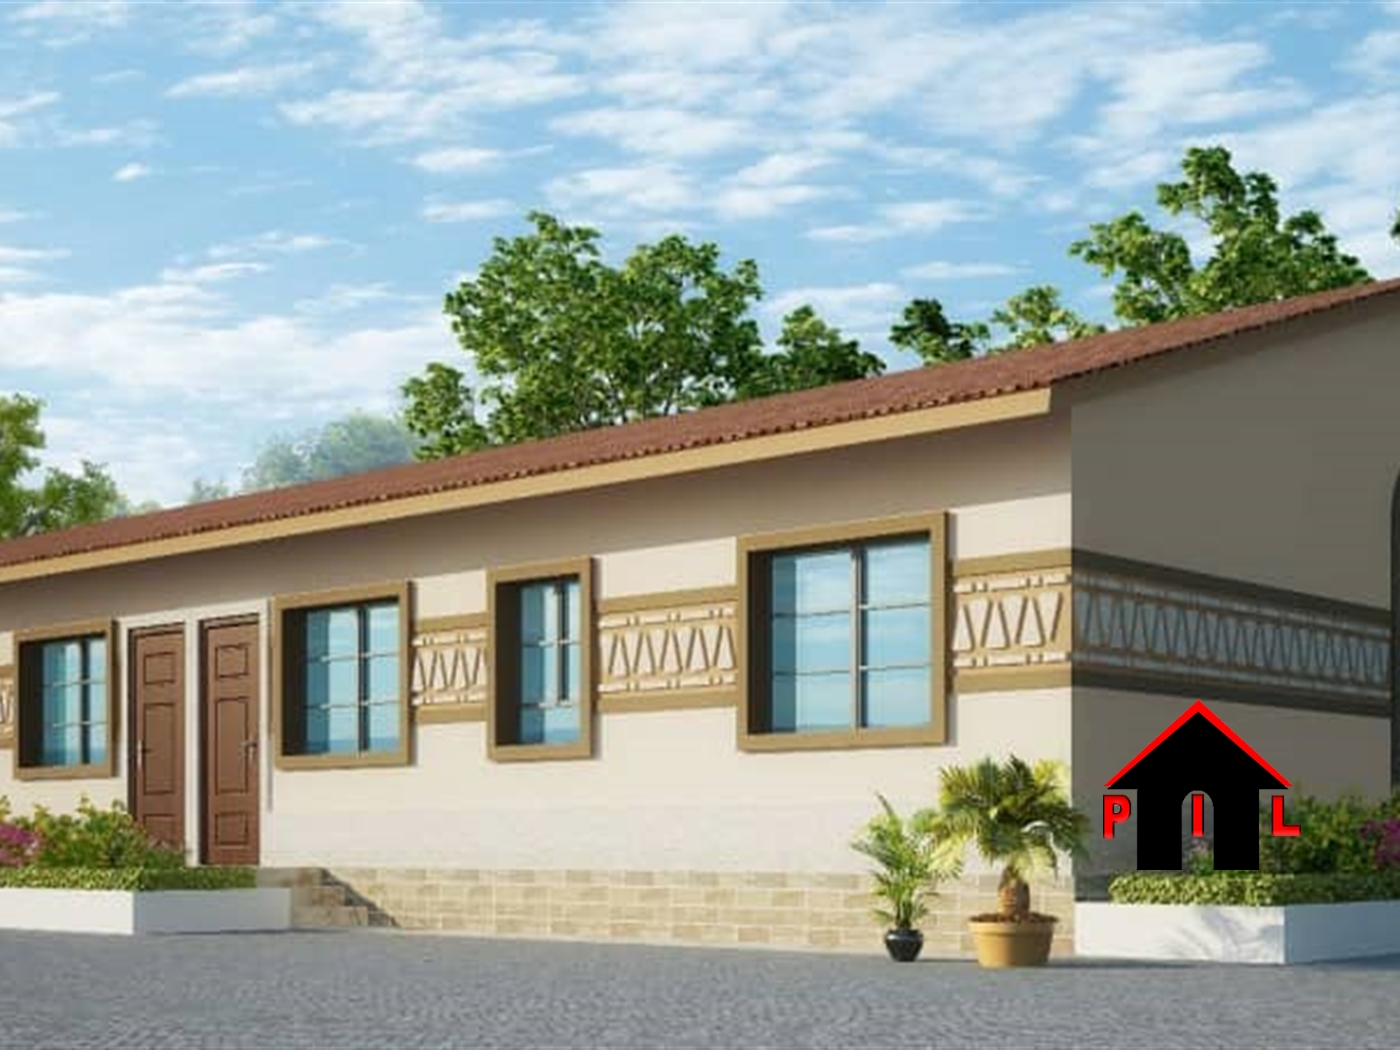 Storyed house for sale in Gayaza Wakiso